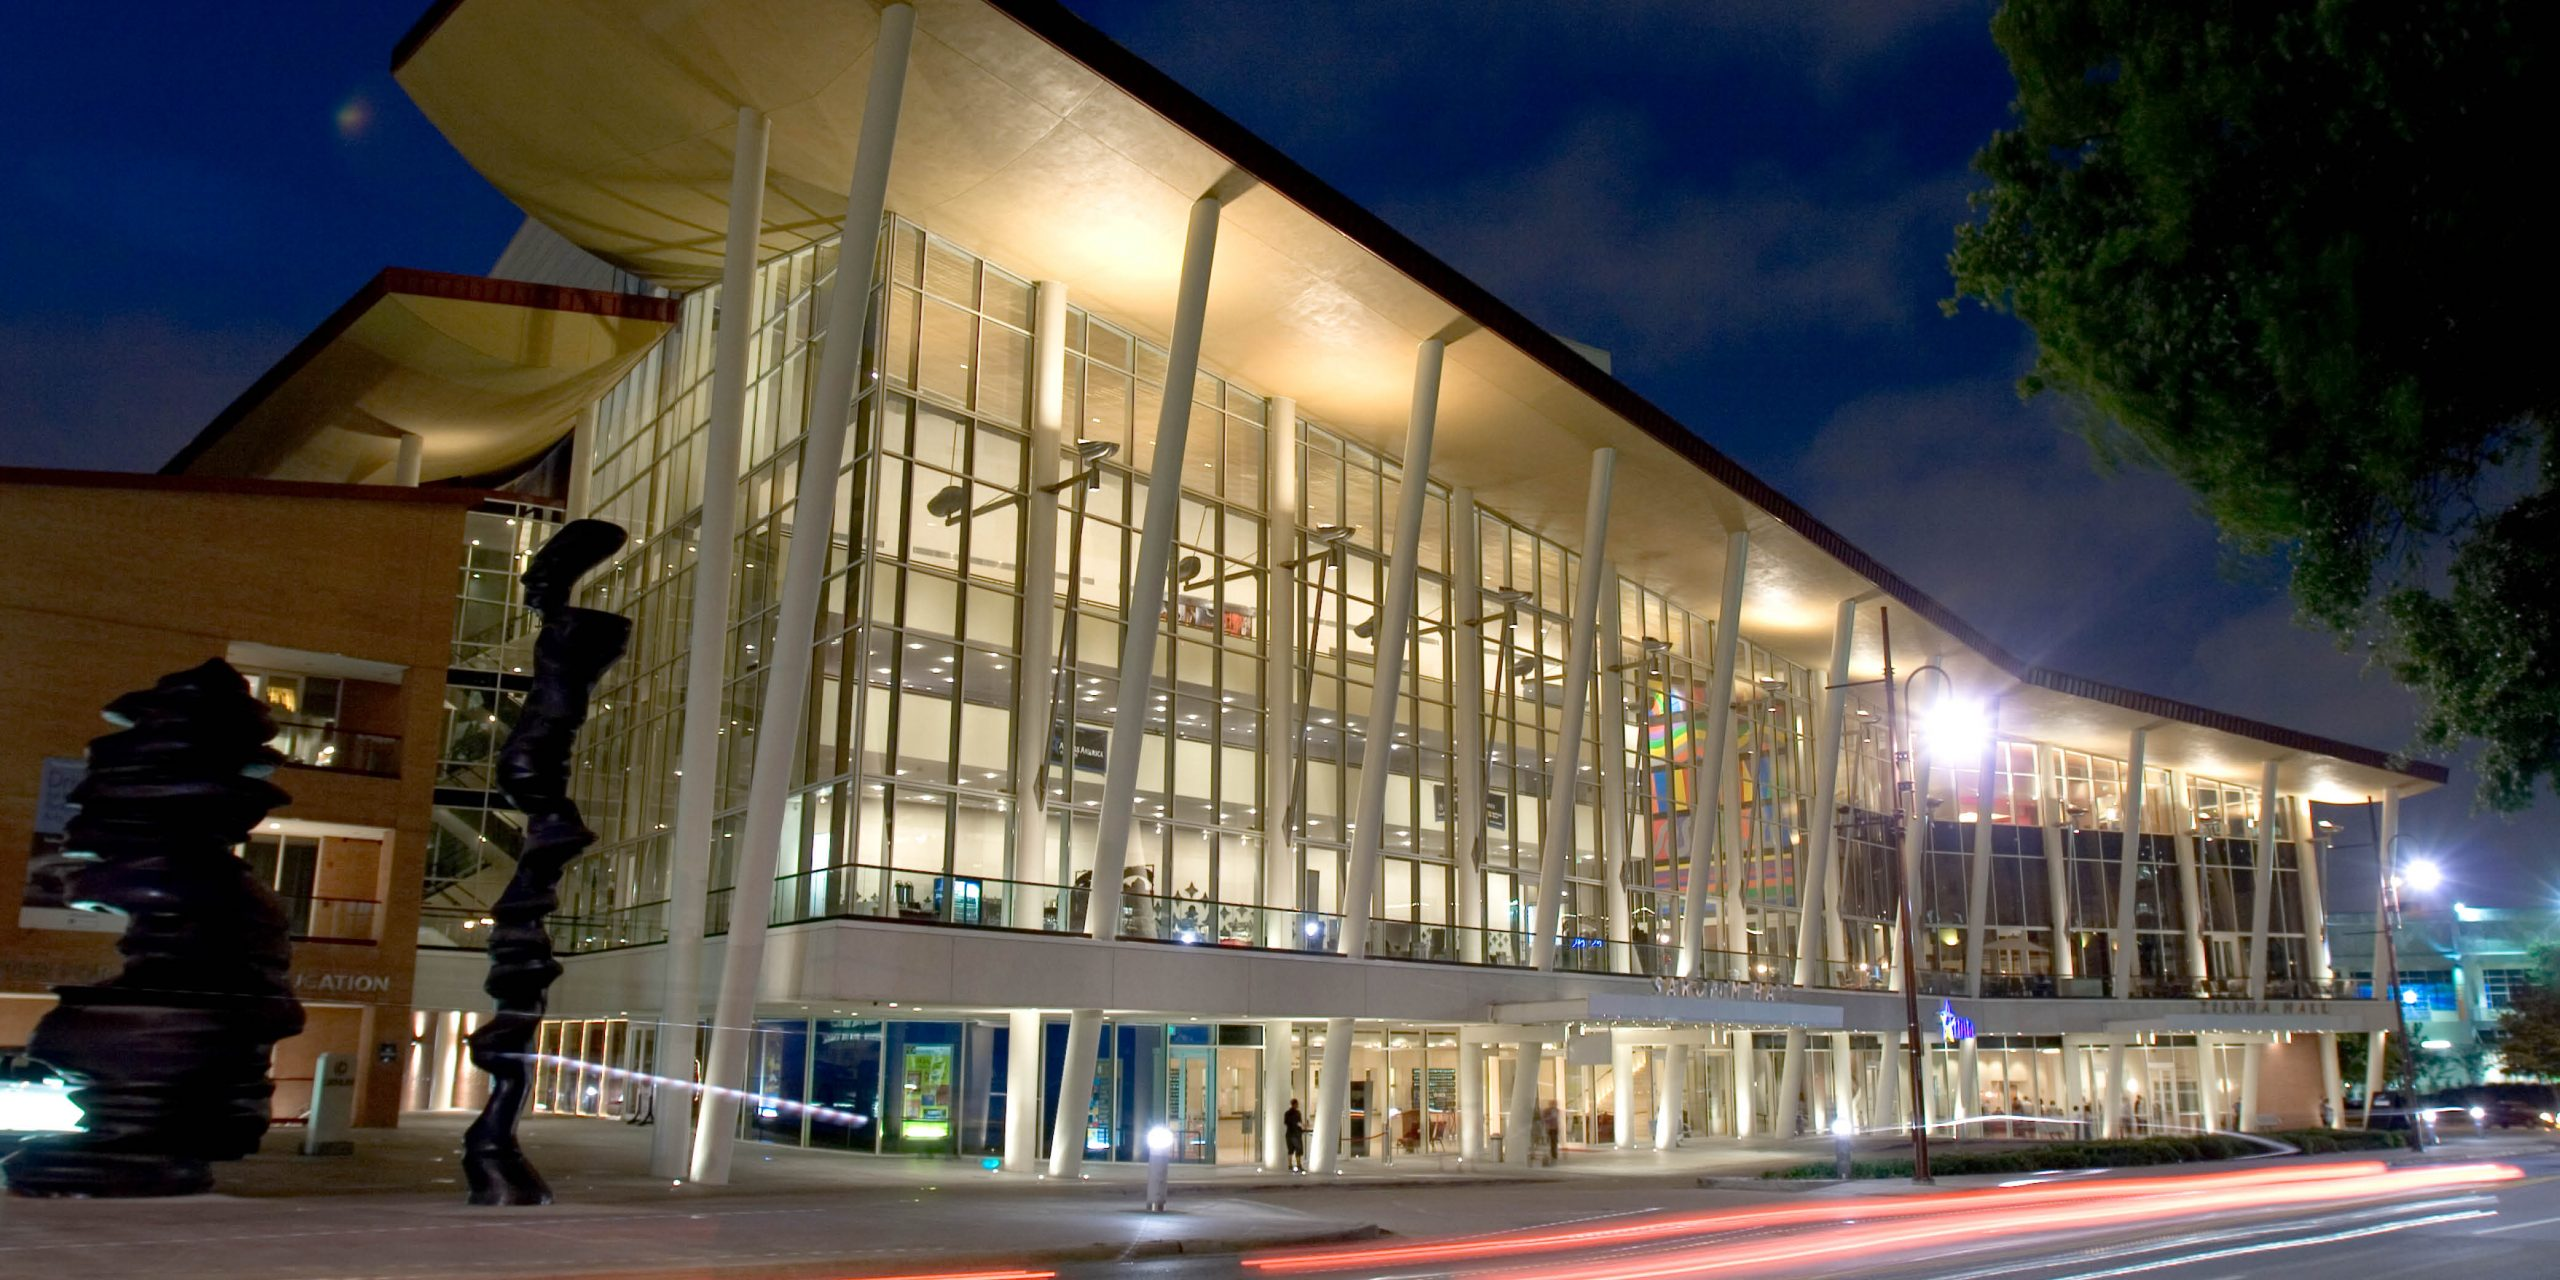 Exterior view of the Hobby Center for the Performing Arts at night.